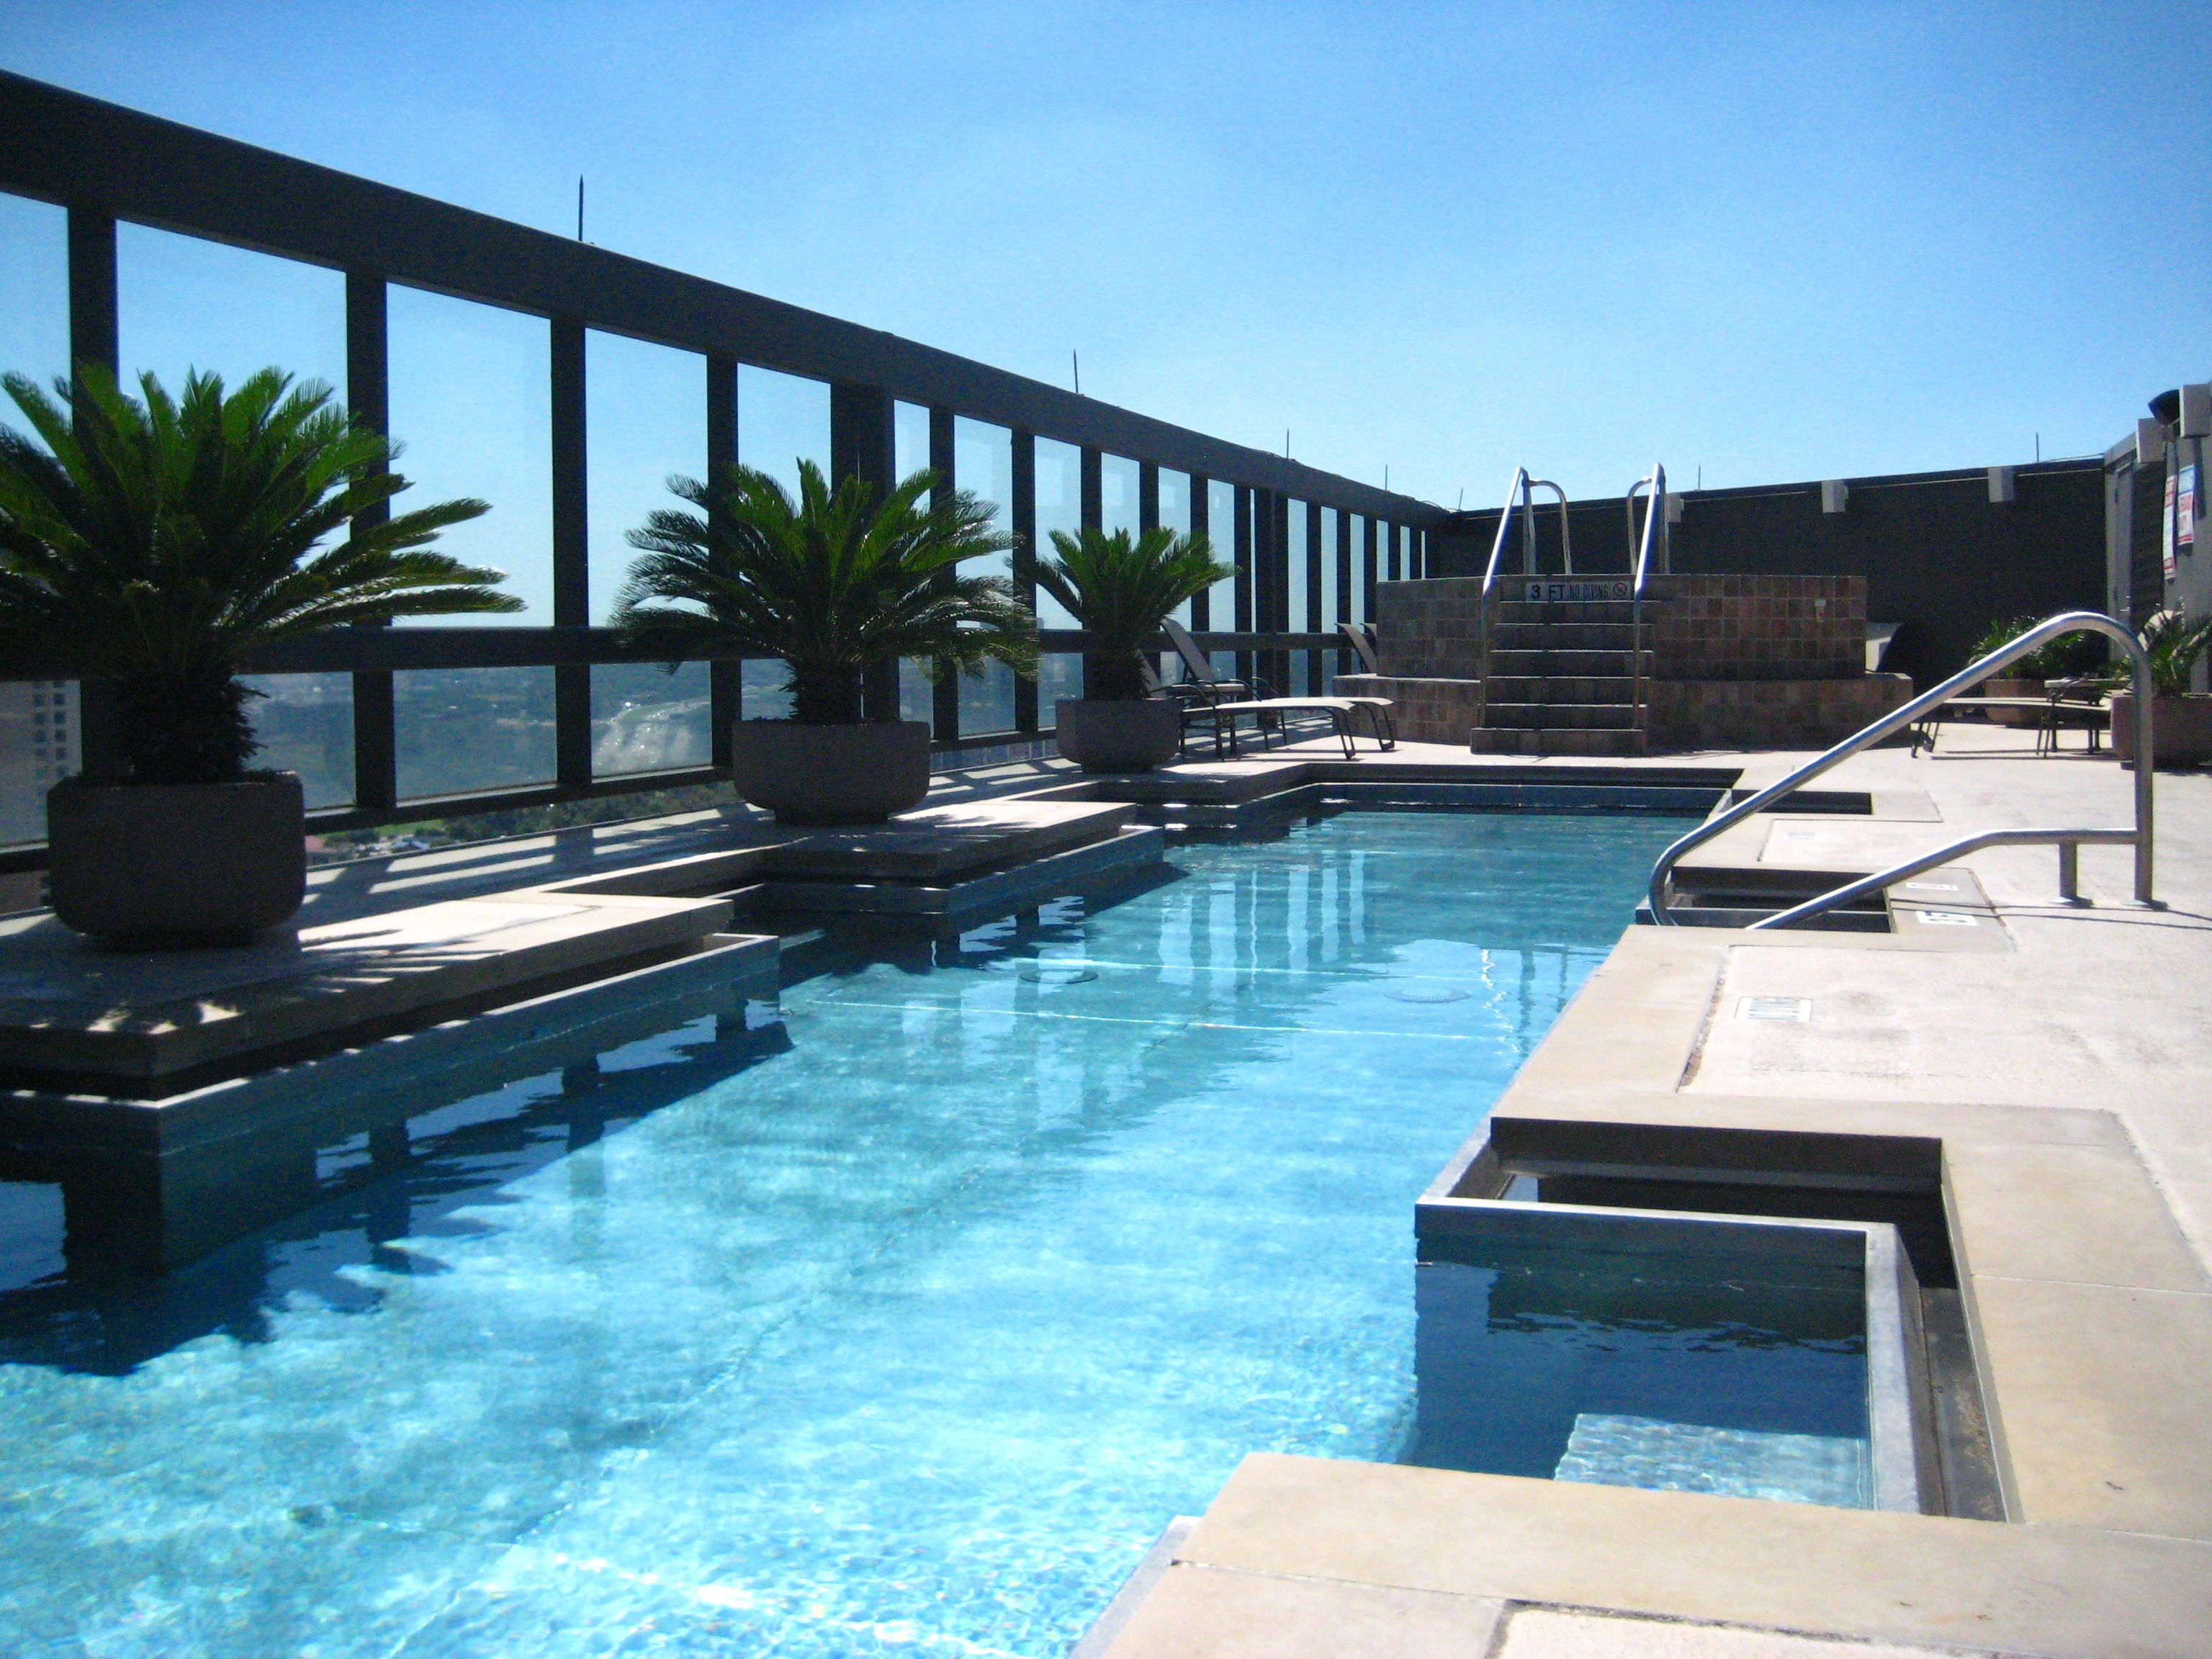 Rooftop Pool Google Search Rooftop Amenities